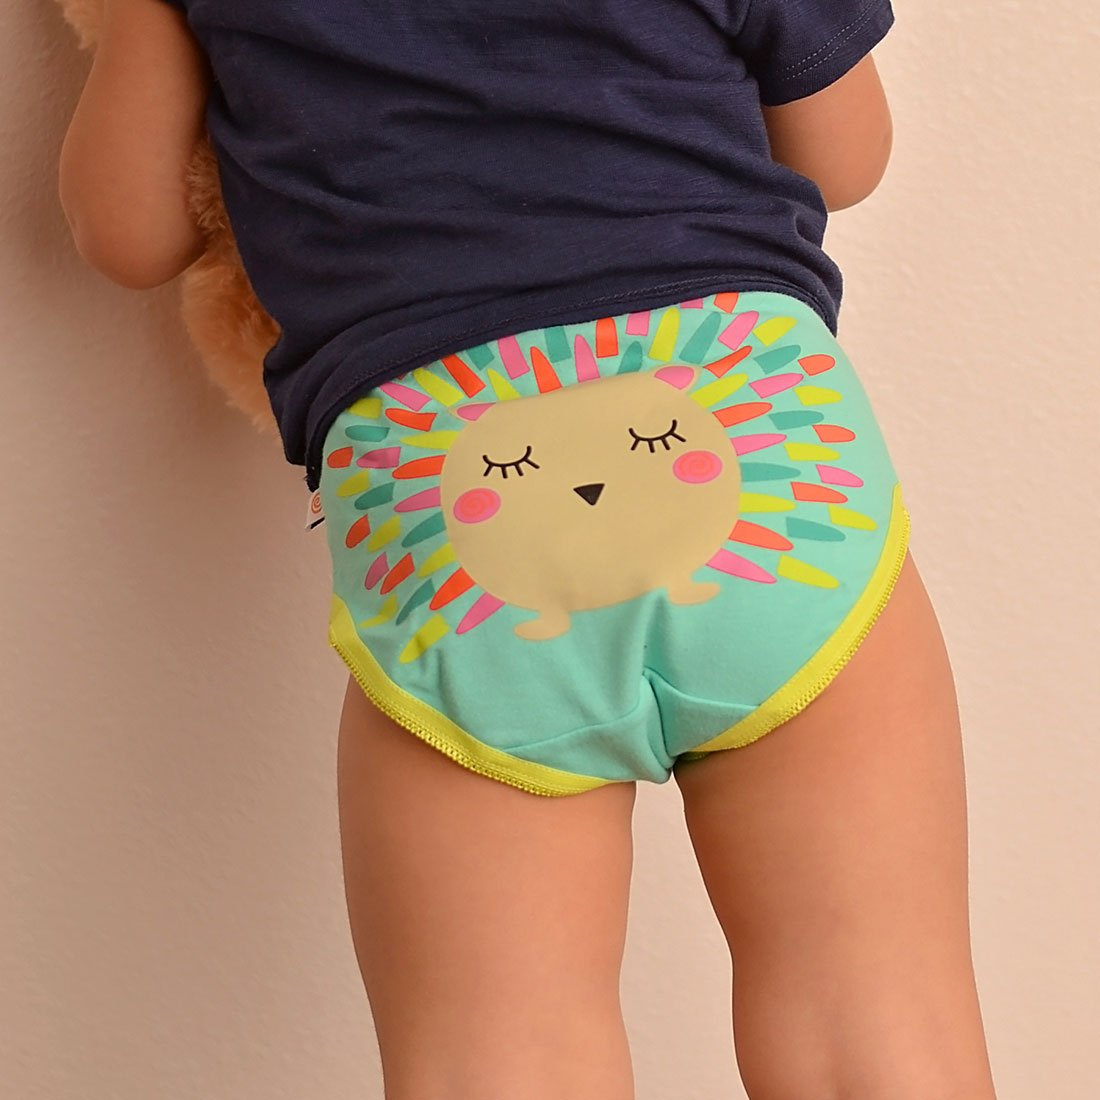 Girls in panties picts Toddler Kids Gots Organic Girls Panty Sets Zoocchini Enchanted Forest